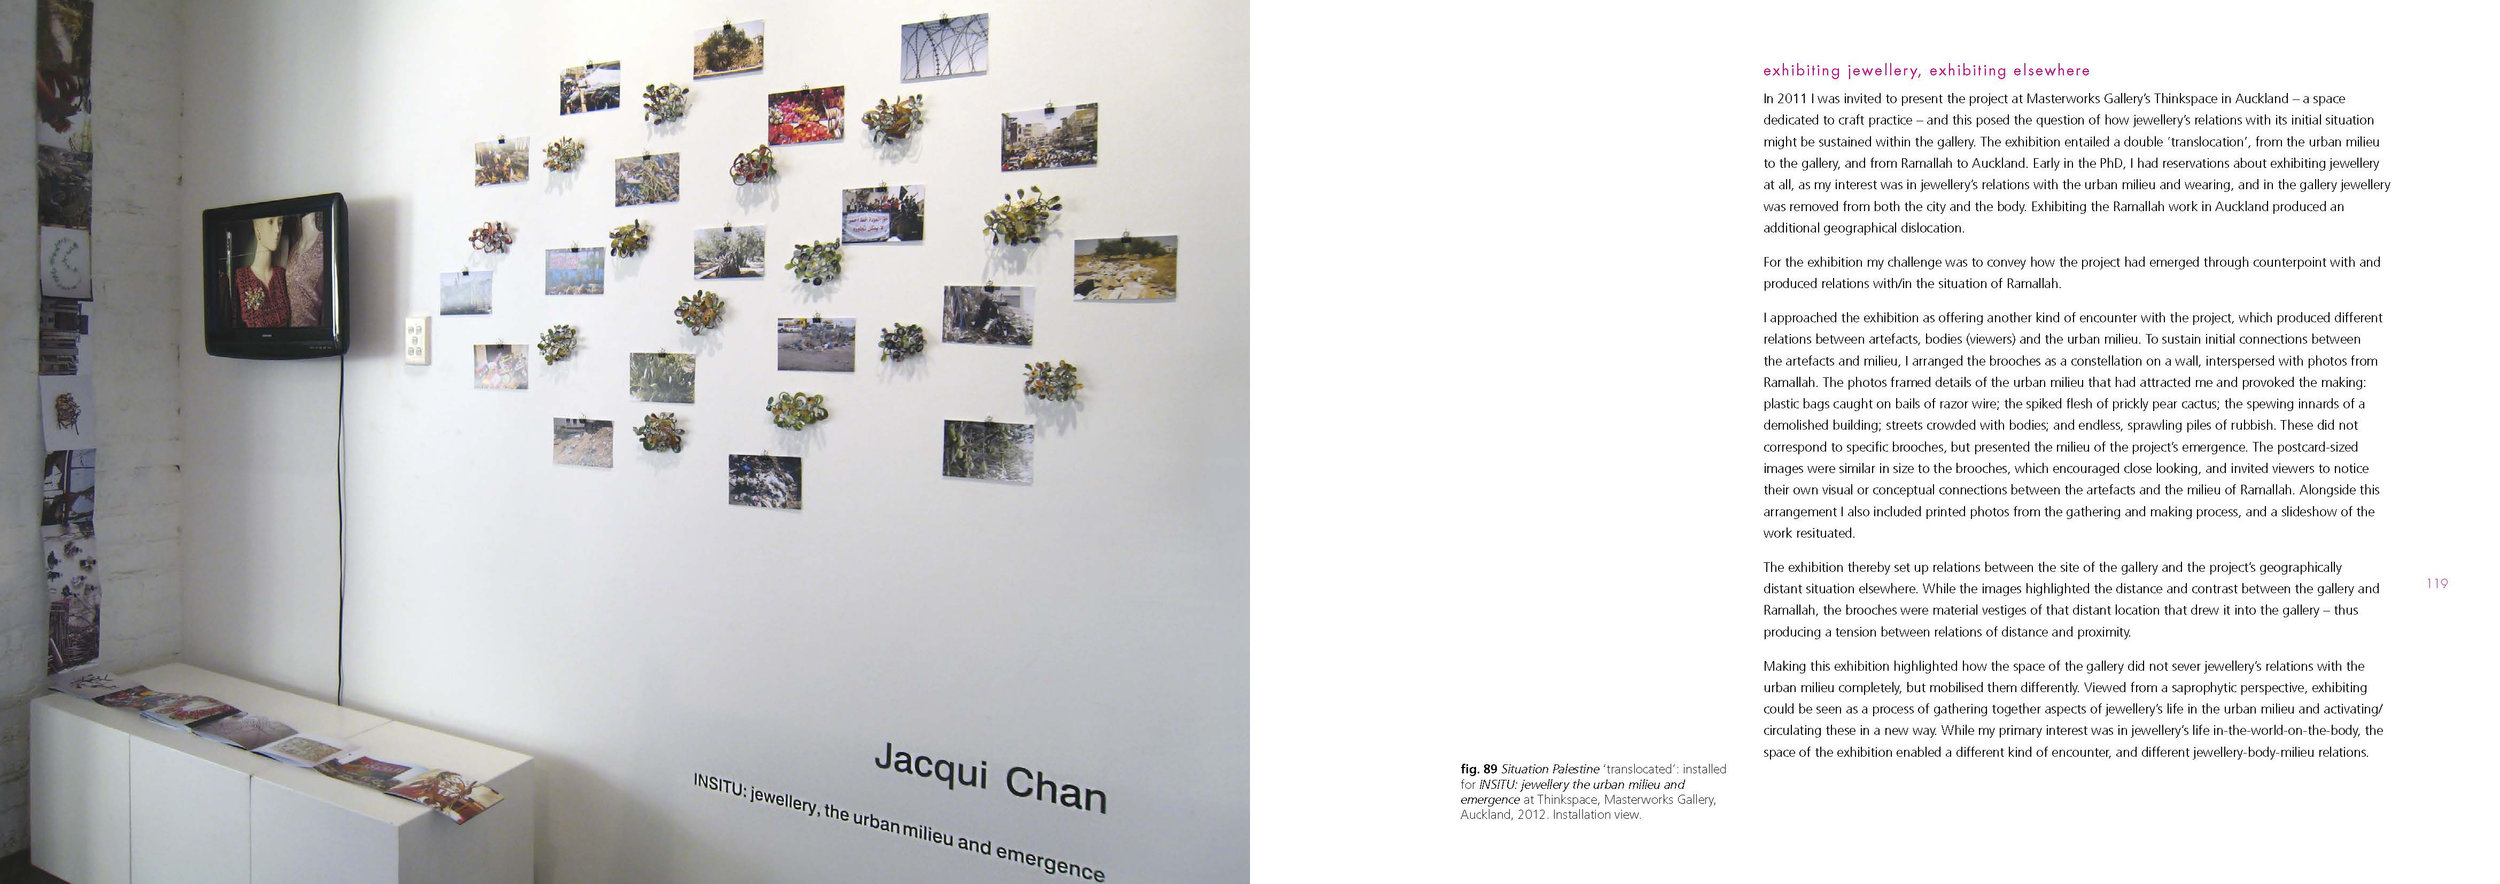 Jacqui Chan_jewellery in the urban milieu_part 2_project milieu 02 + 03_Page_040.jpg